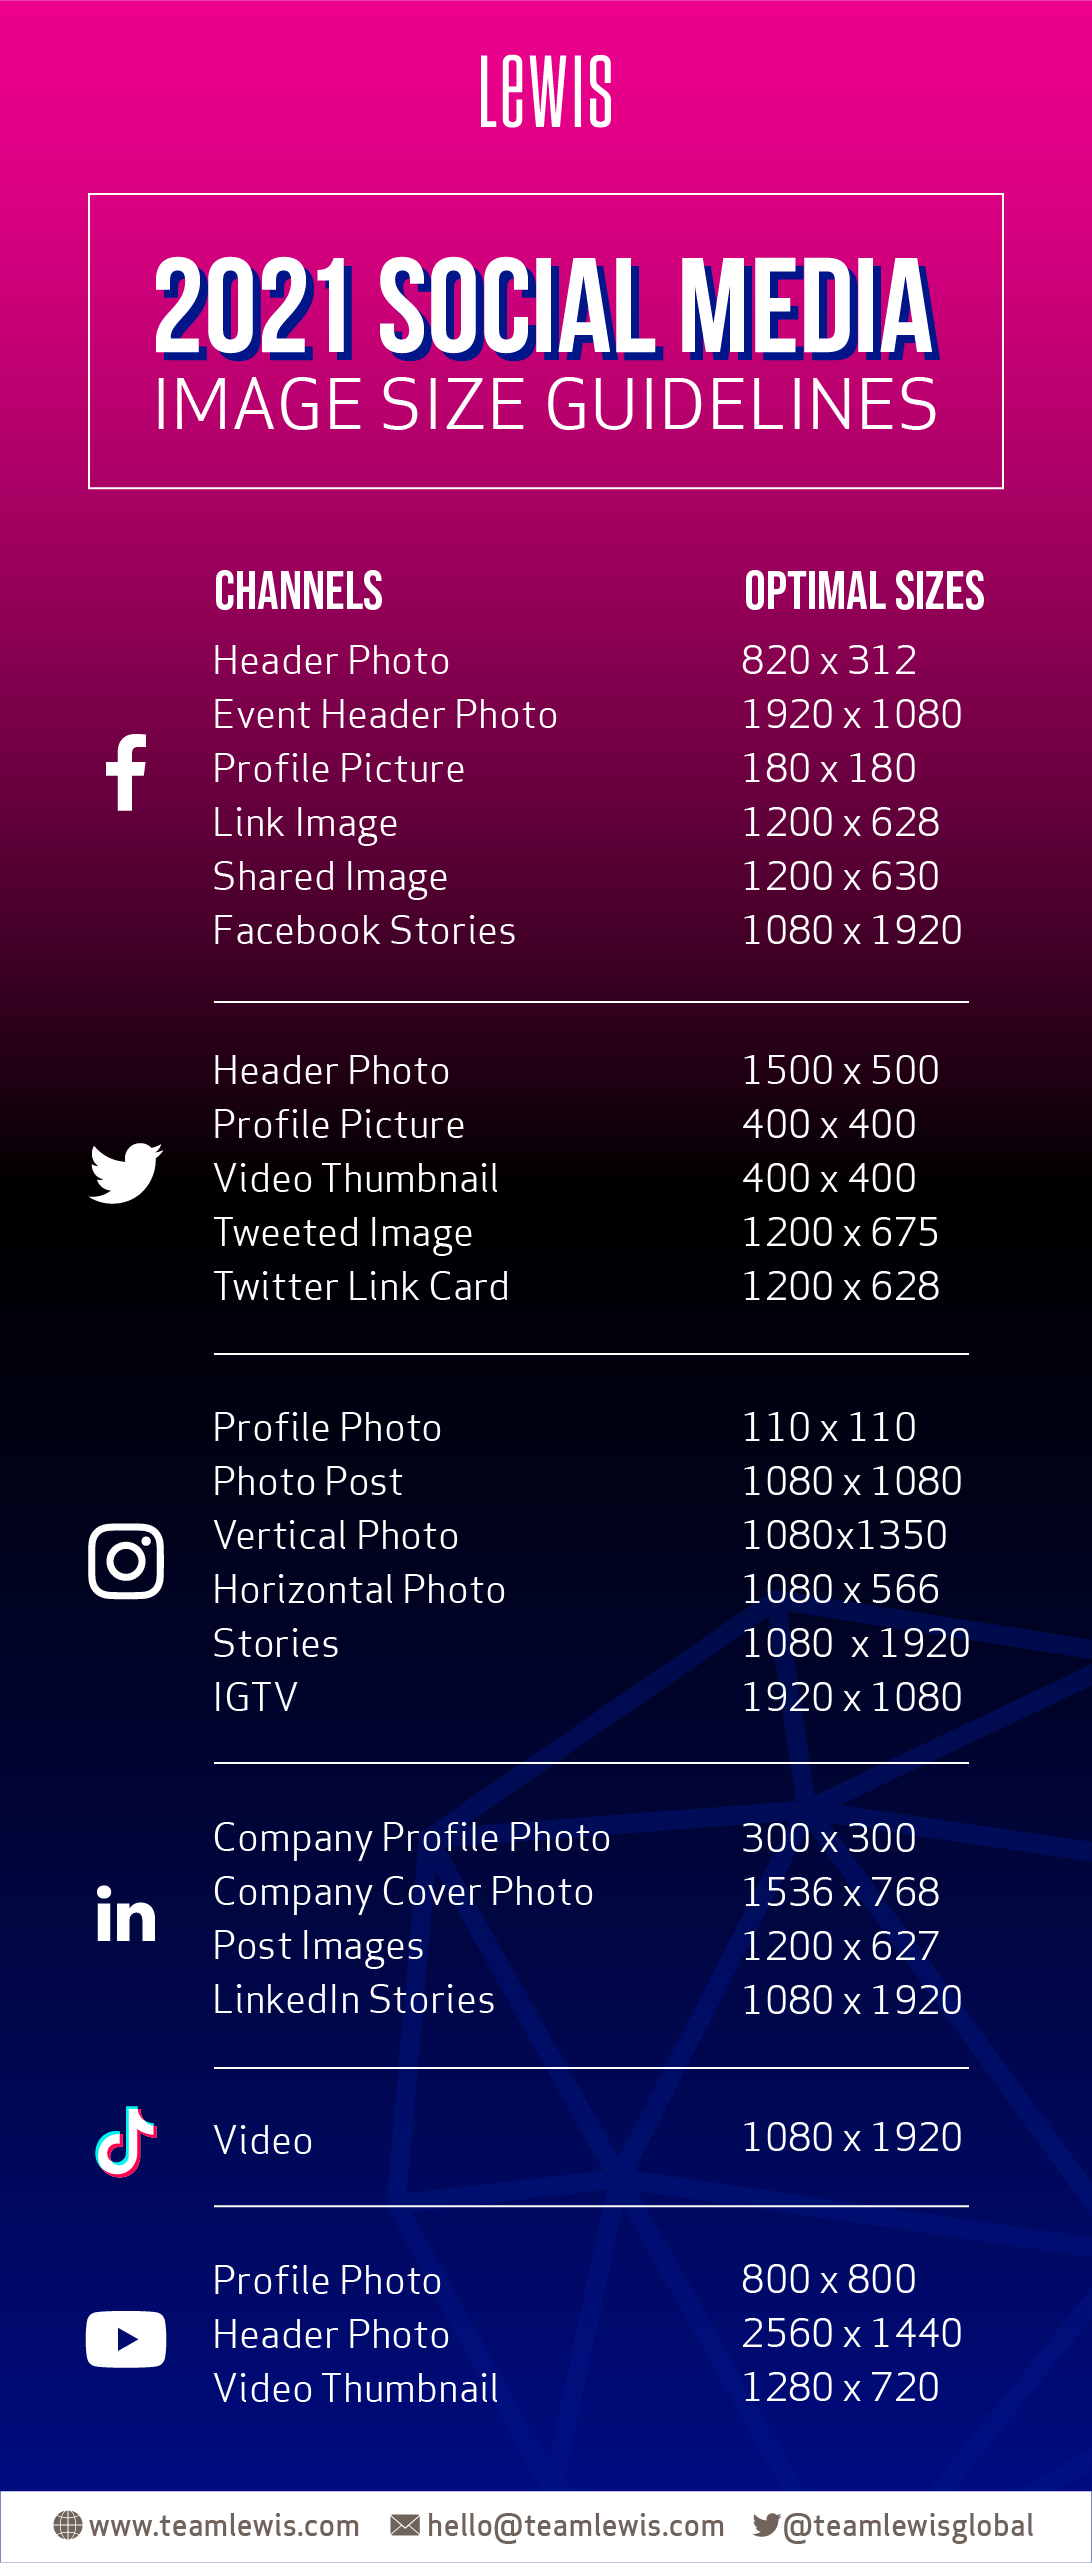 2021 Social Media Image Guidelines